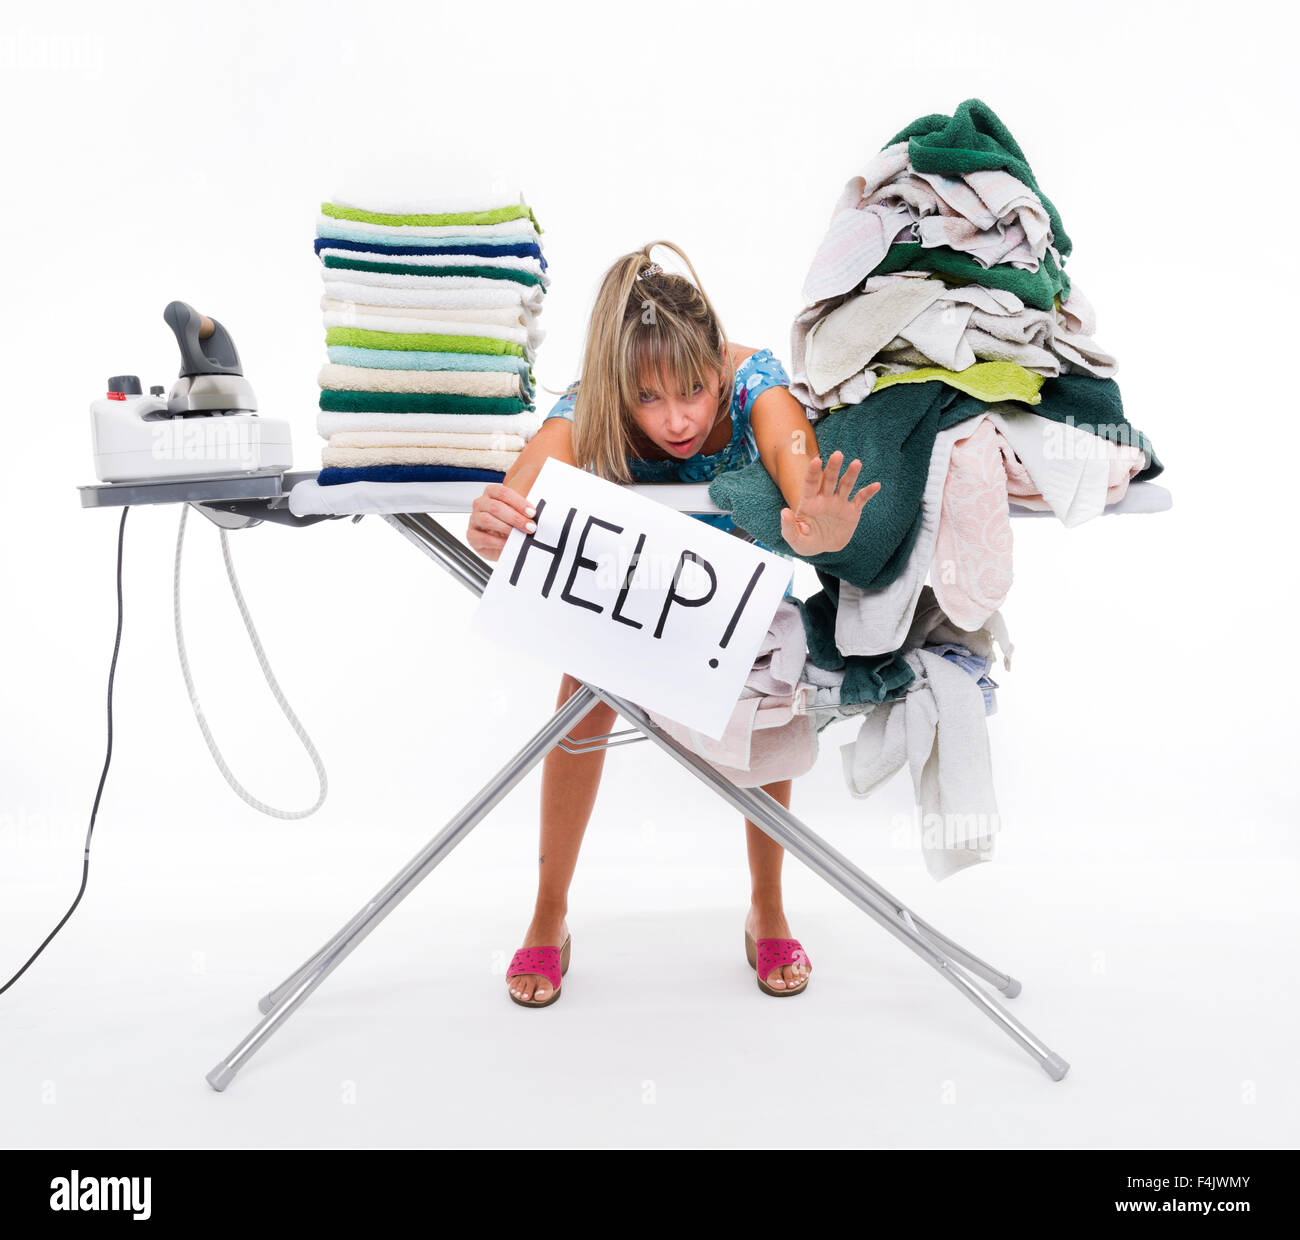 Woman behind a table covered with clothes to be ironed, displays a sign with help - Stock Image